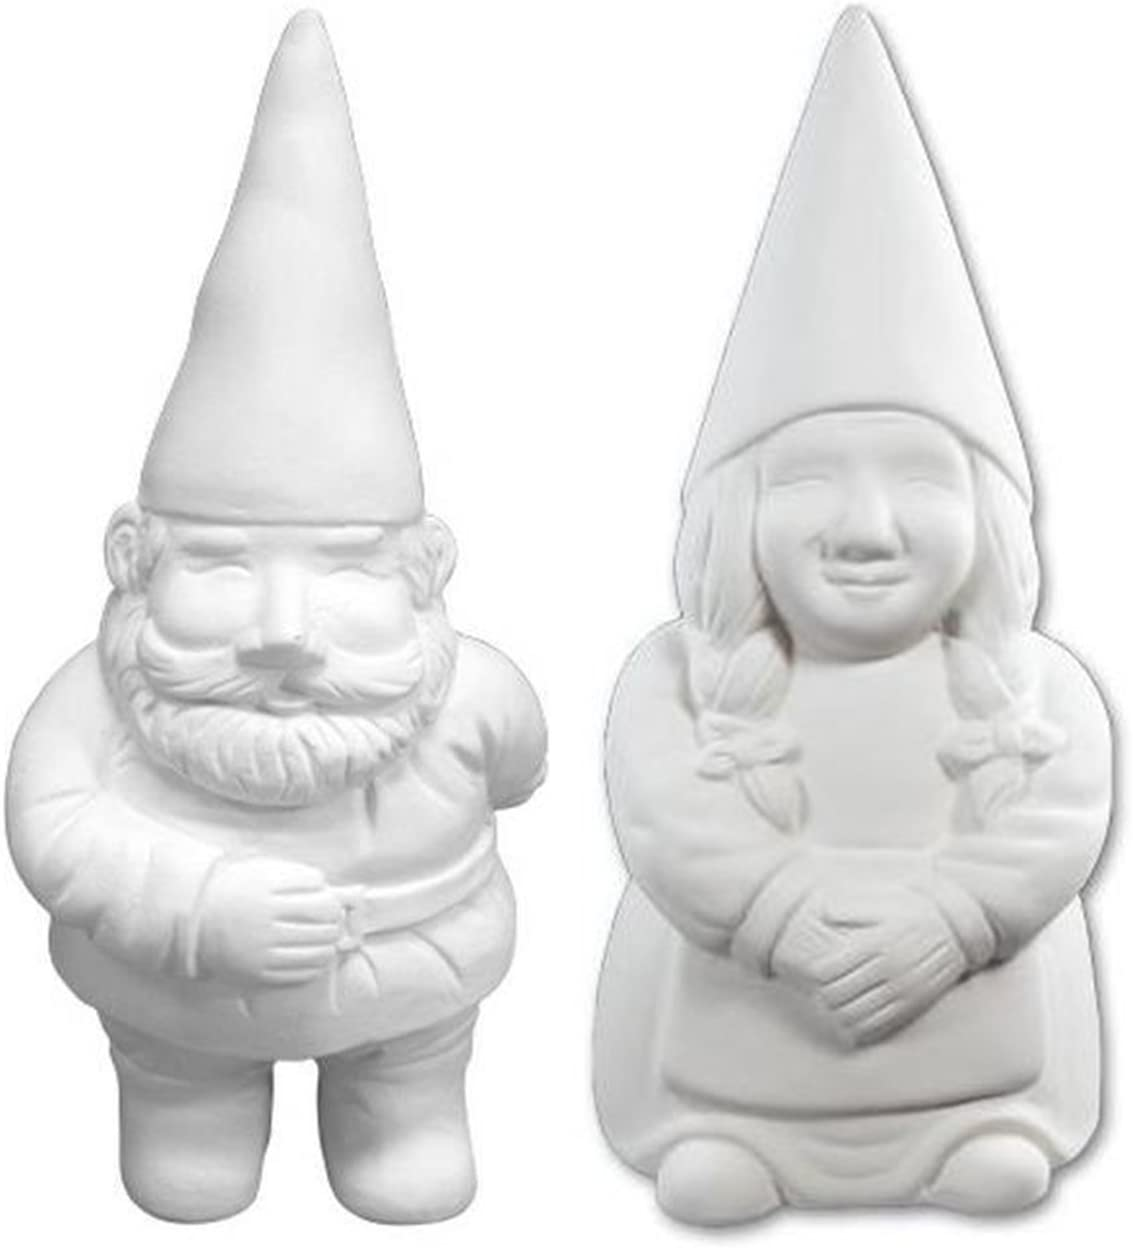 George and Gwen The Garden Gnomes - Paint Your Own Gnome-y Ceramic Keepsakes